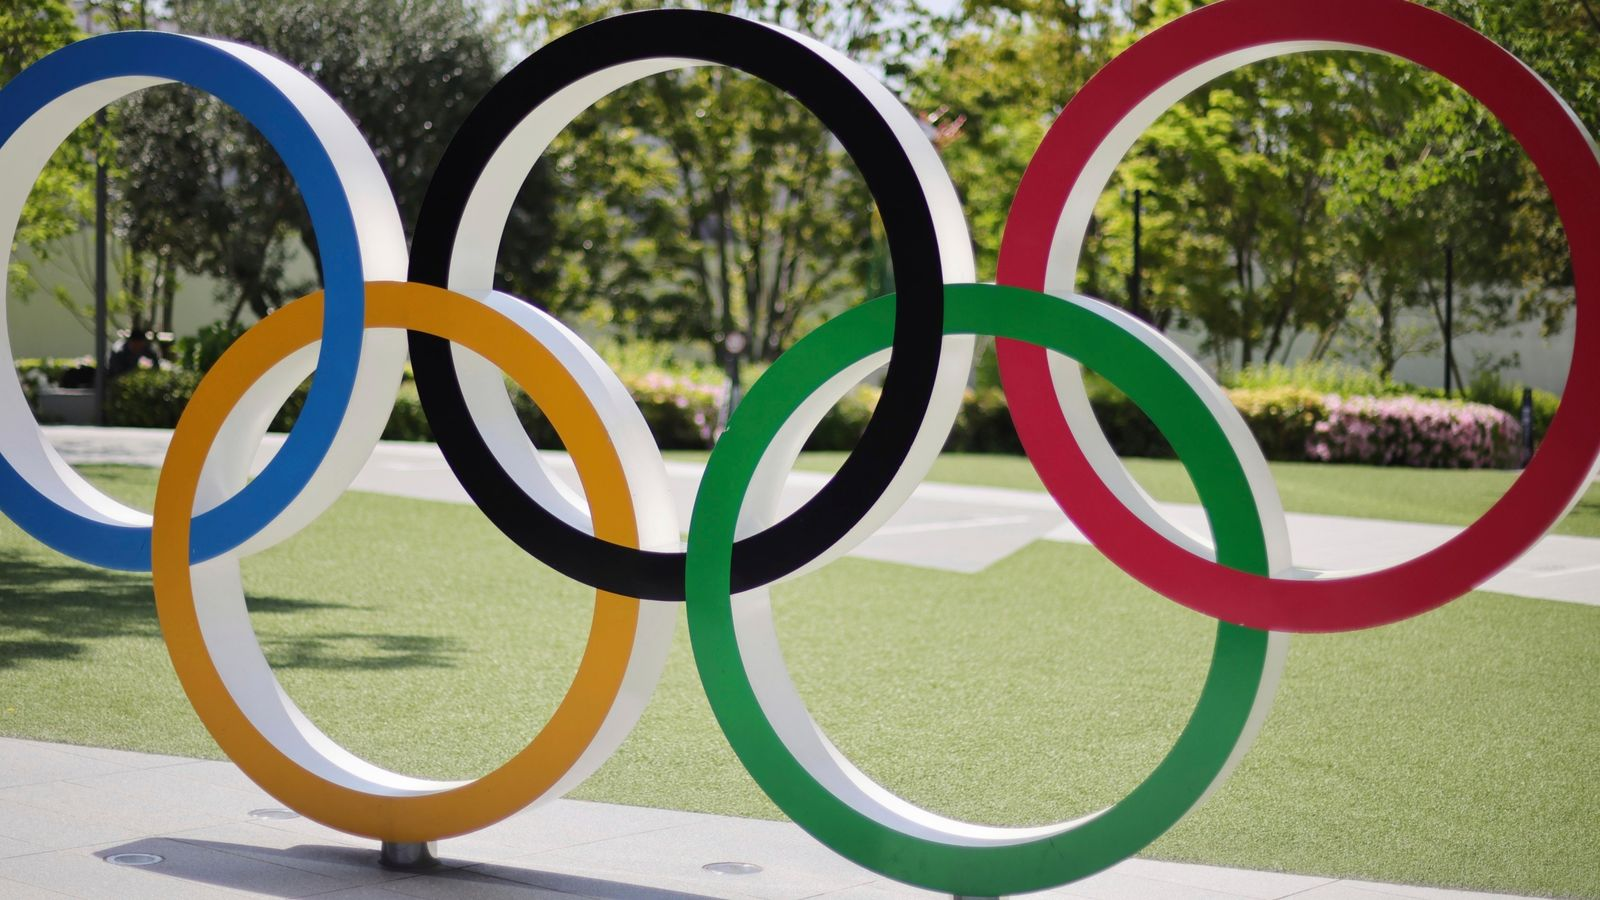 World Netball's president Liz Nicholl discusses governing body's position on Olympic Games